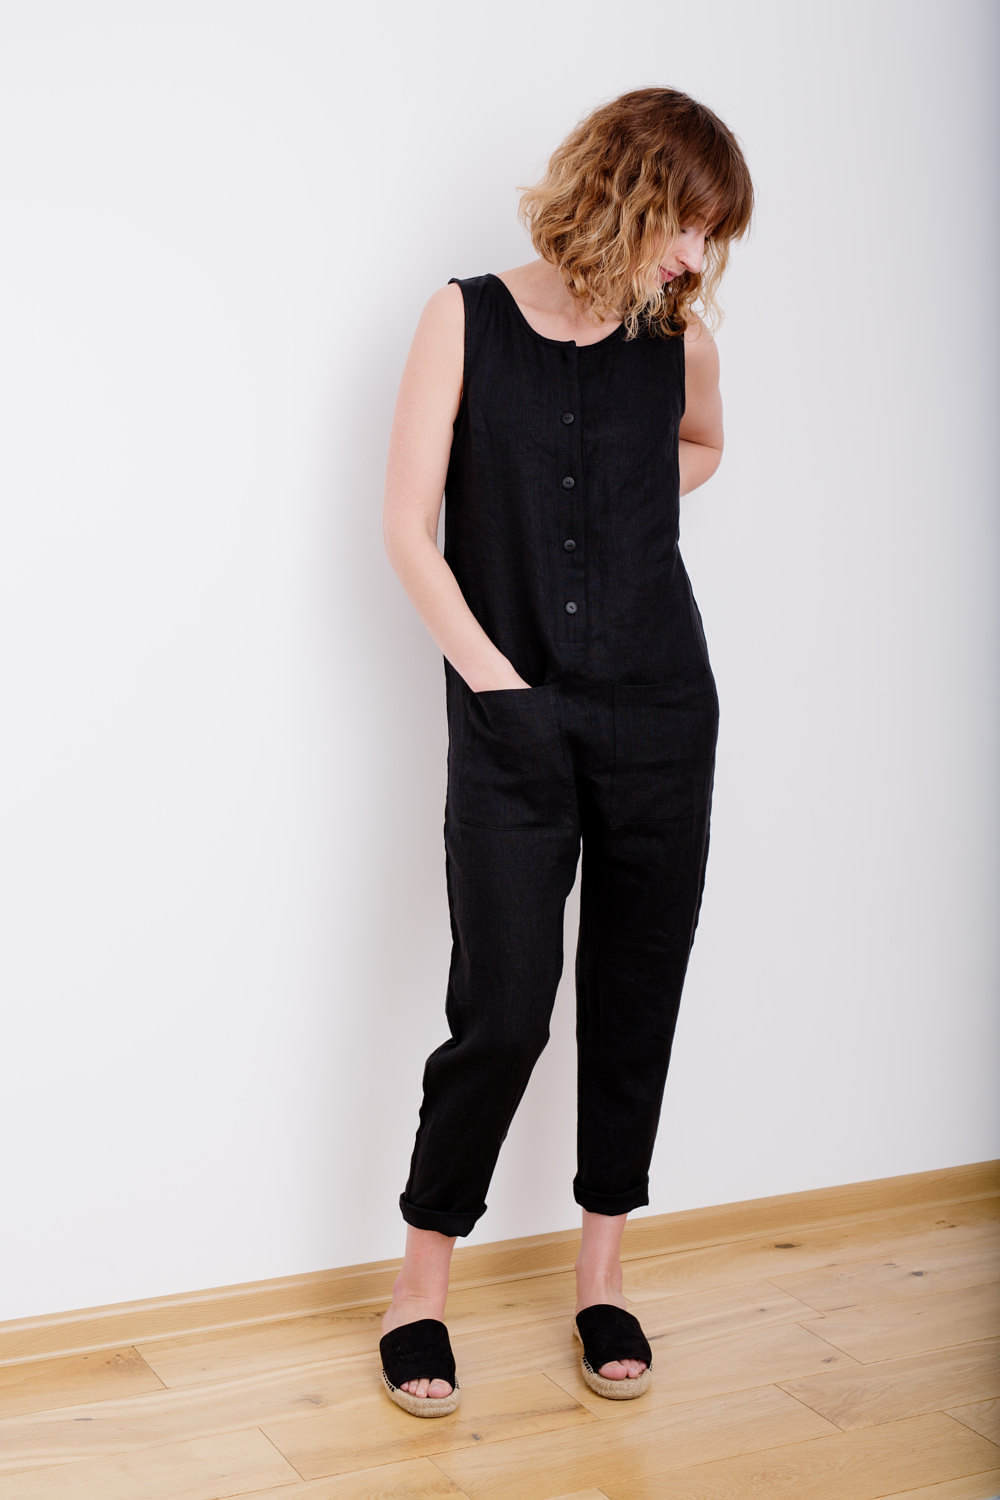 For mama: OffOn  Black Linen Jumpsuit , $115.48